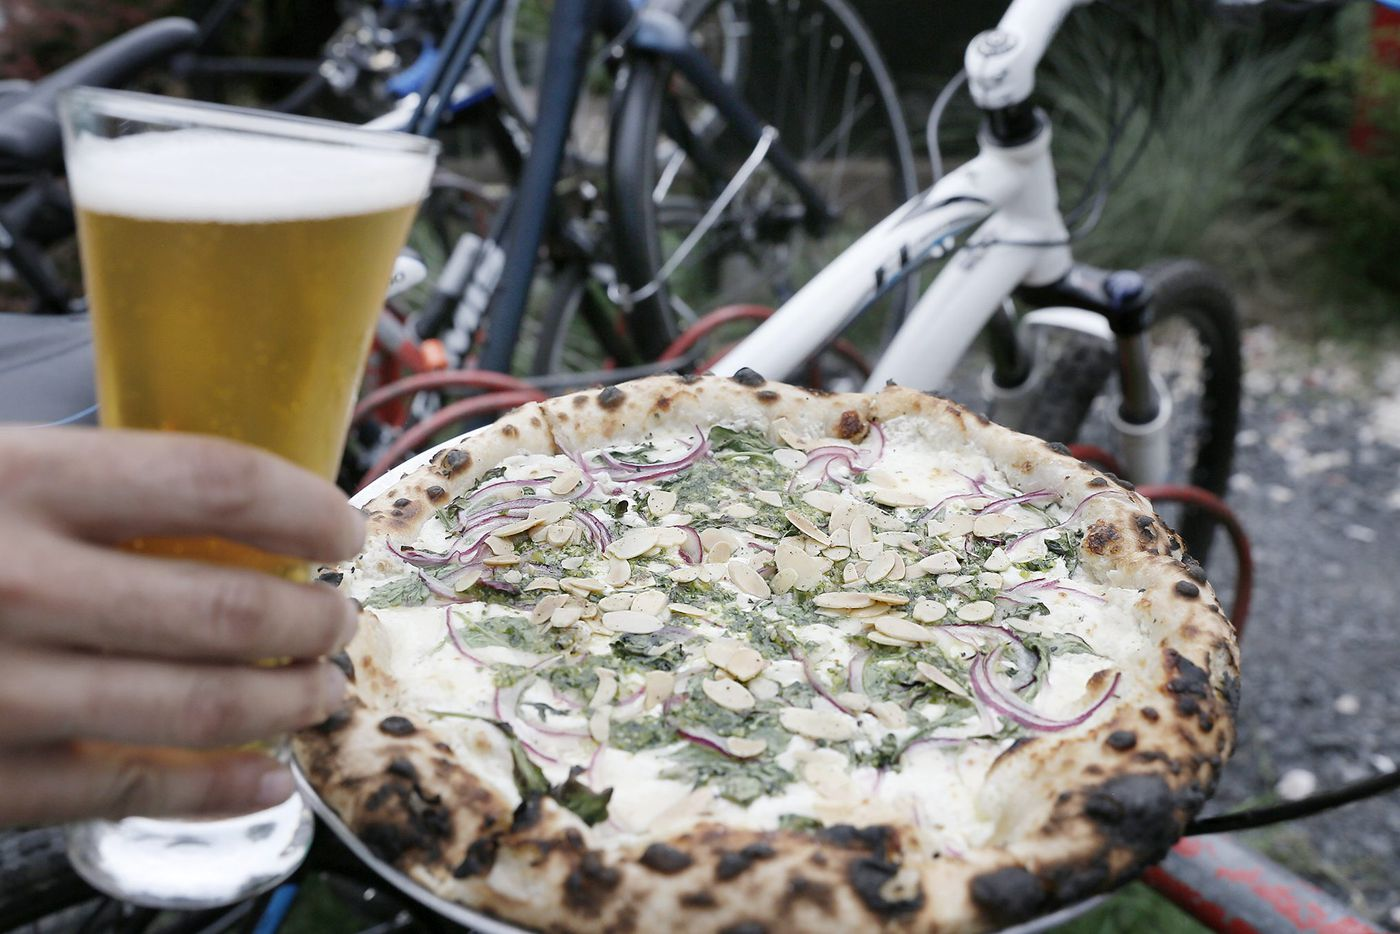 8 great bike ride routes in search of food and beer around Philadelphia